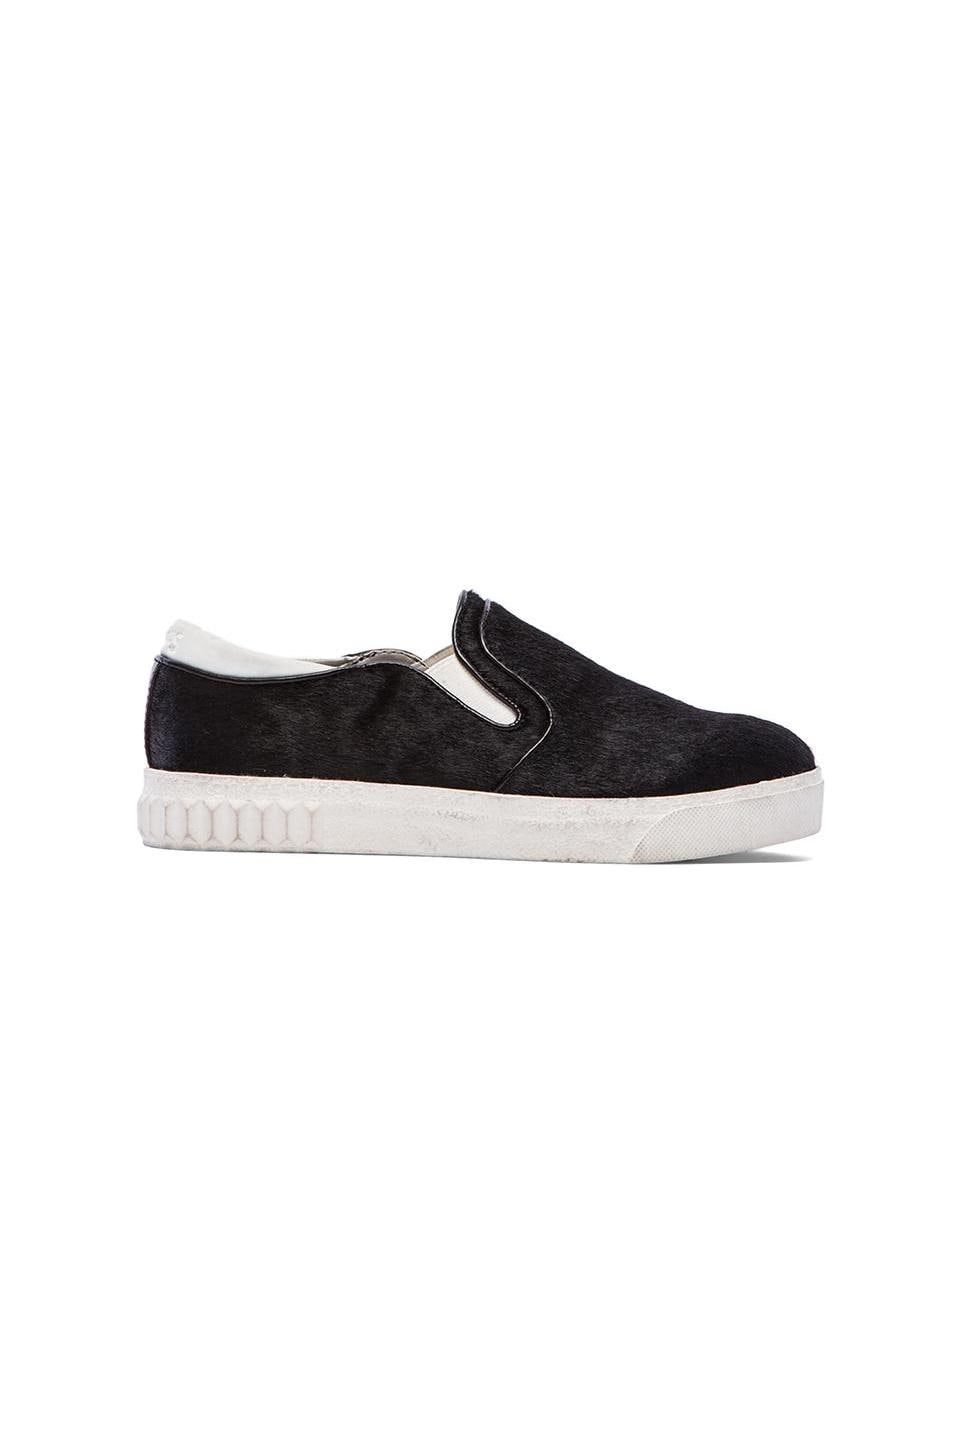 Circus by Sam Edelman Cruz Sneaker with Calf Hair in Black Brahma